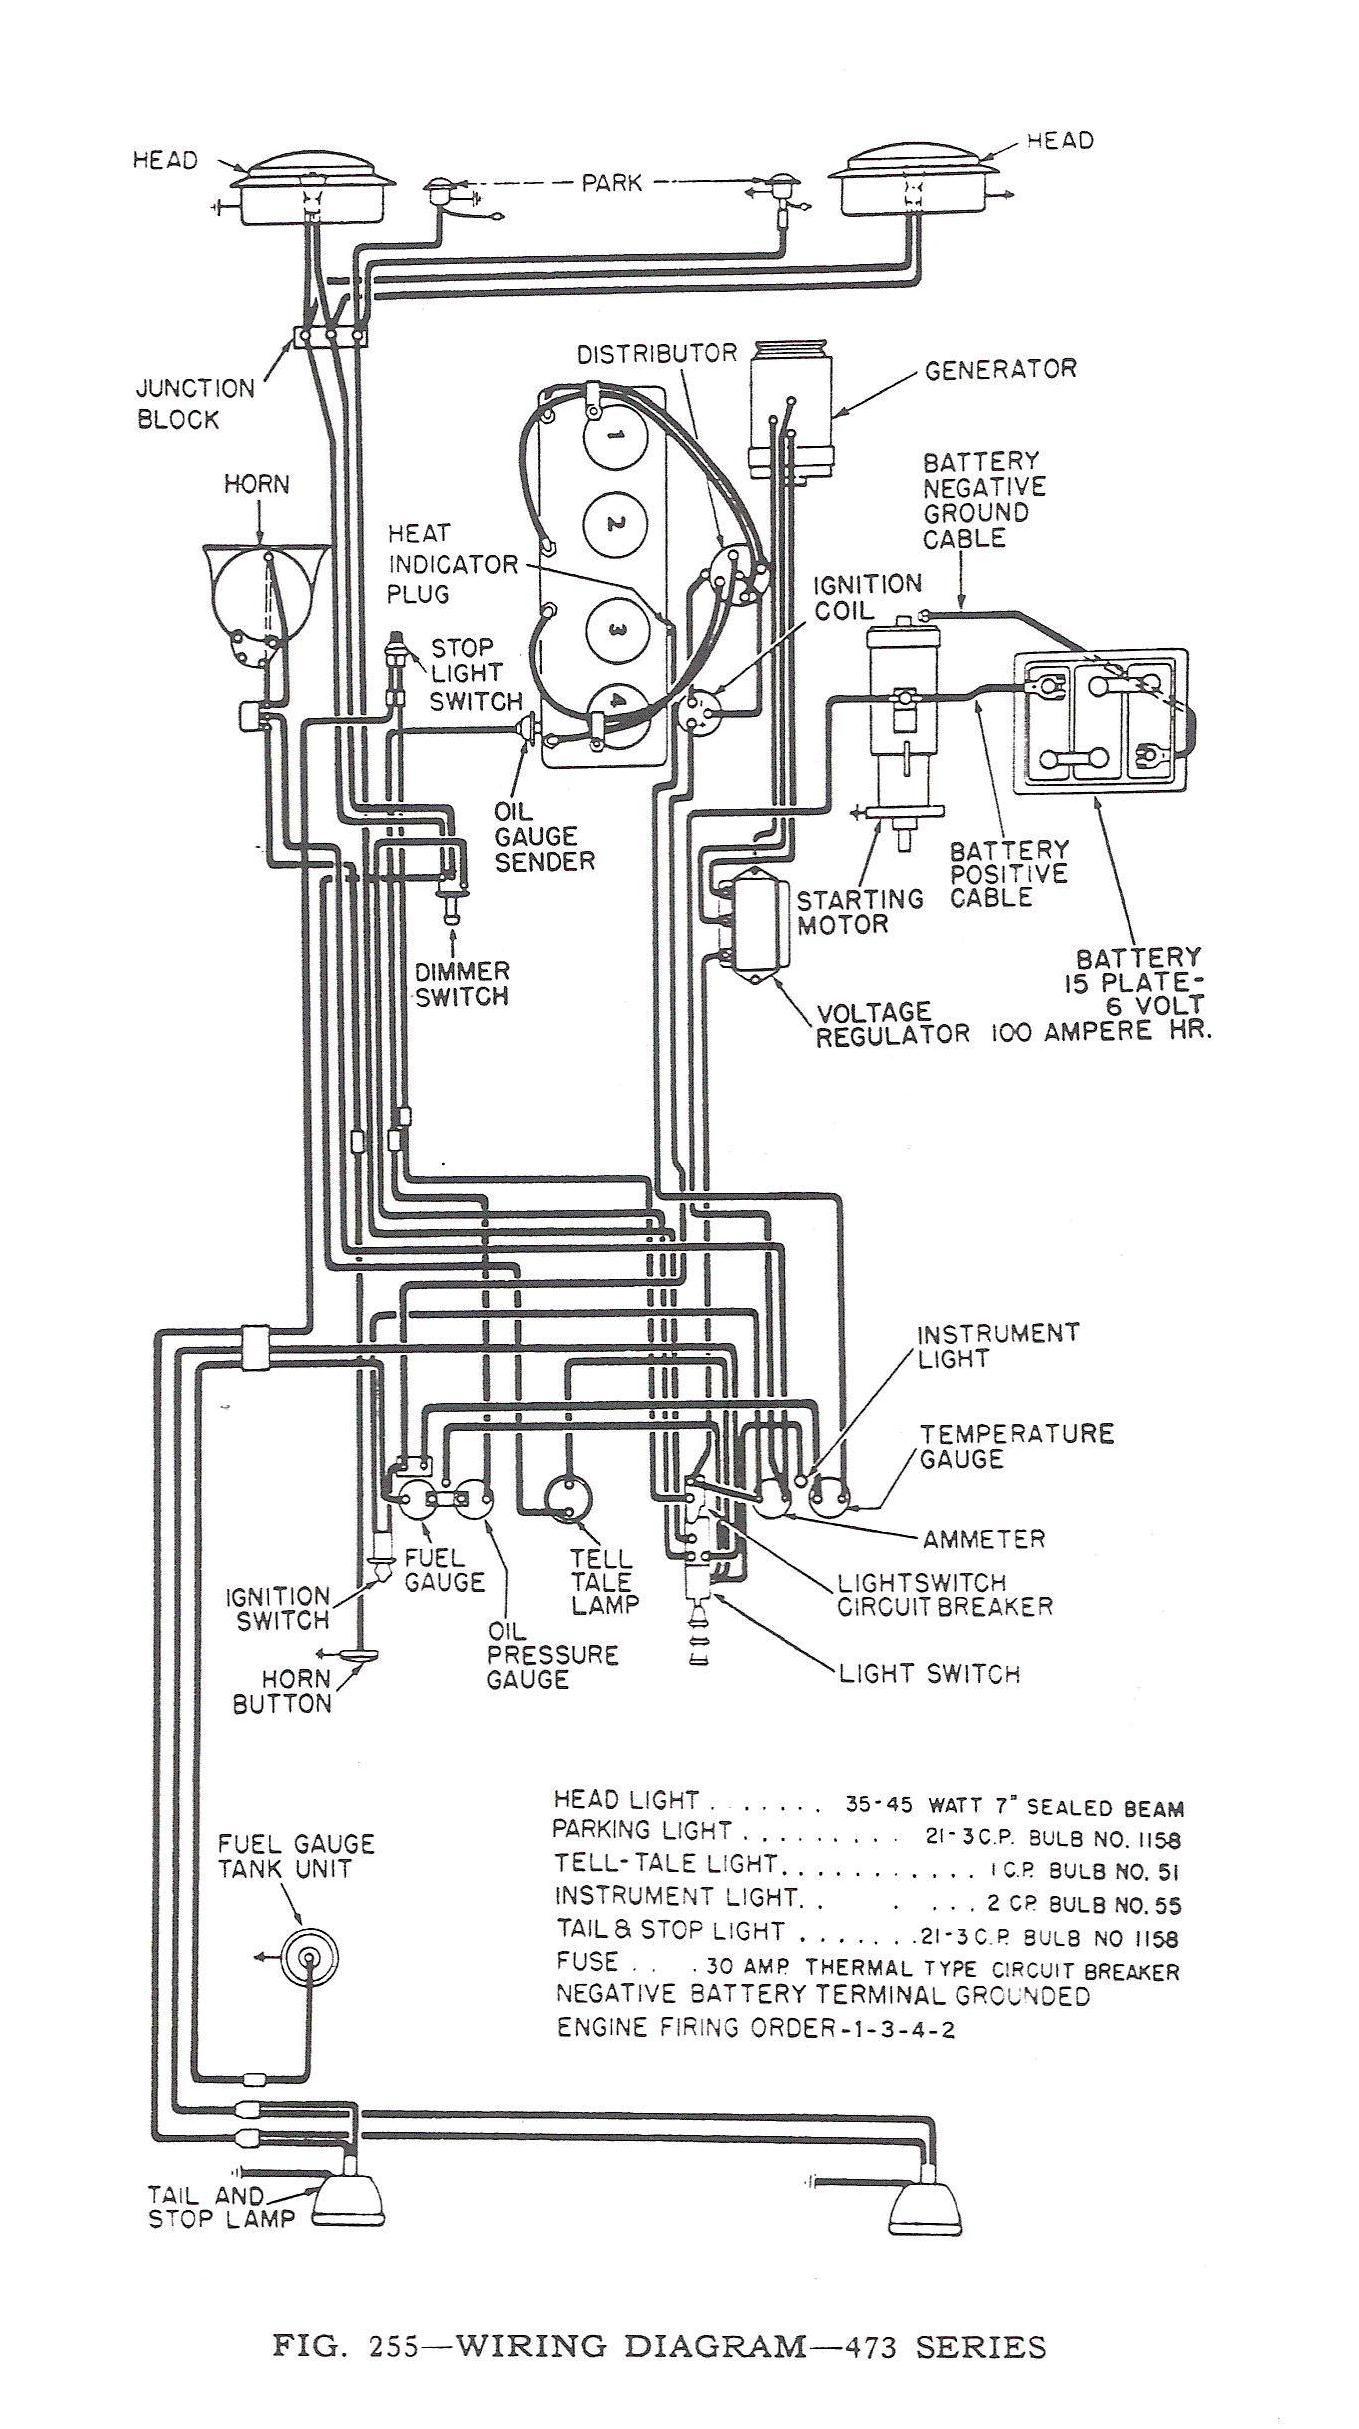 1952    jeep    series 473    wiring       diagrams     Google Search